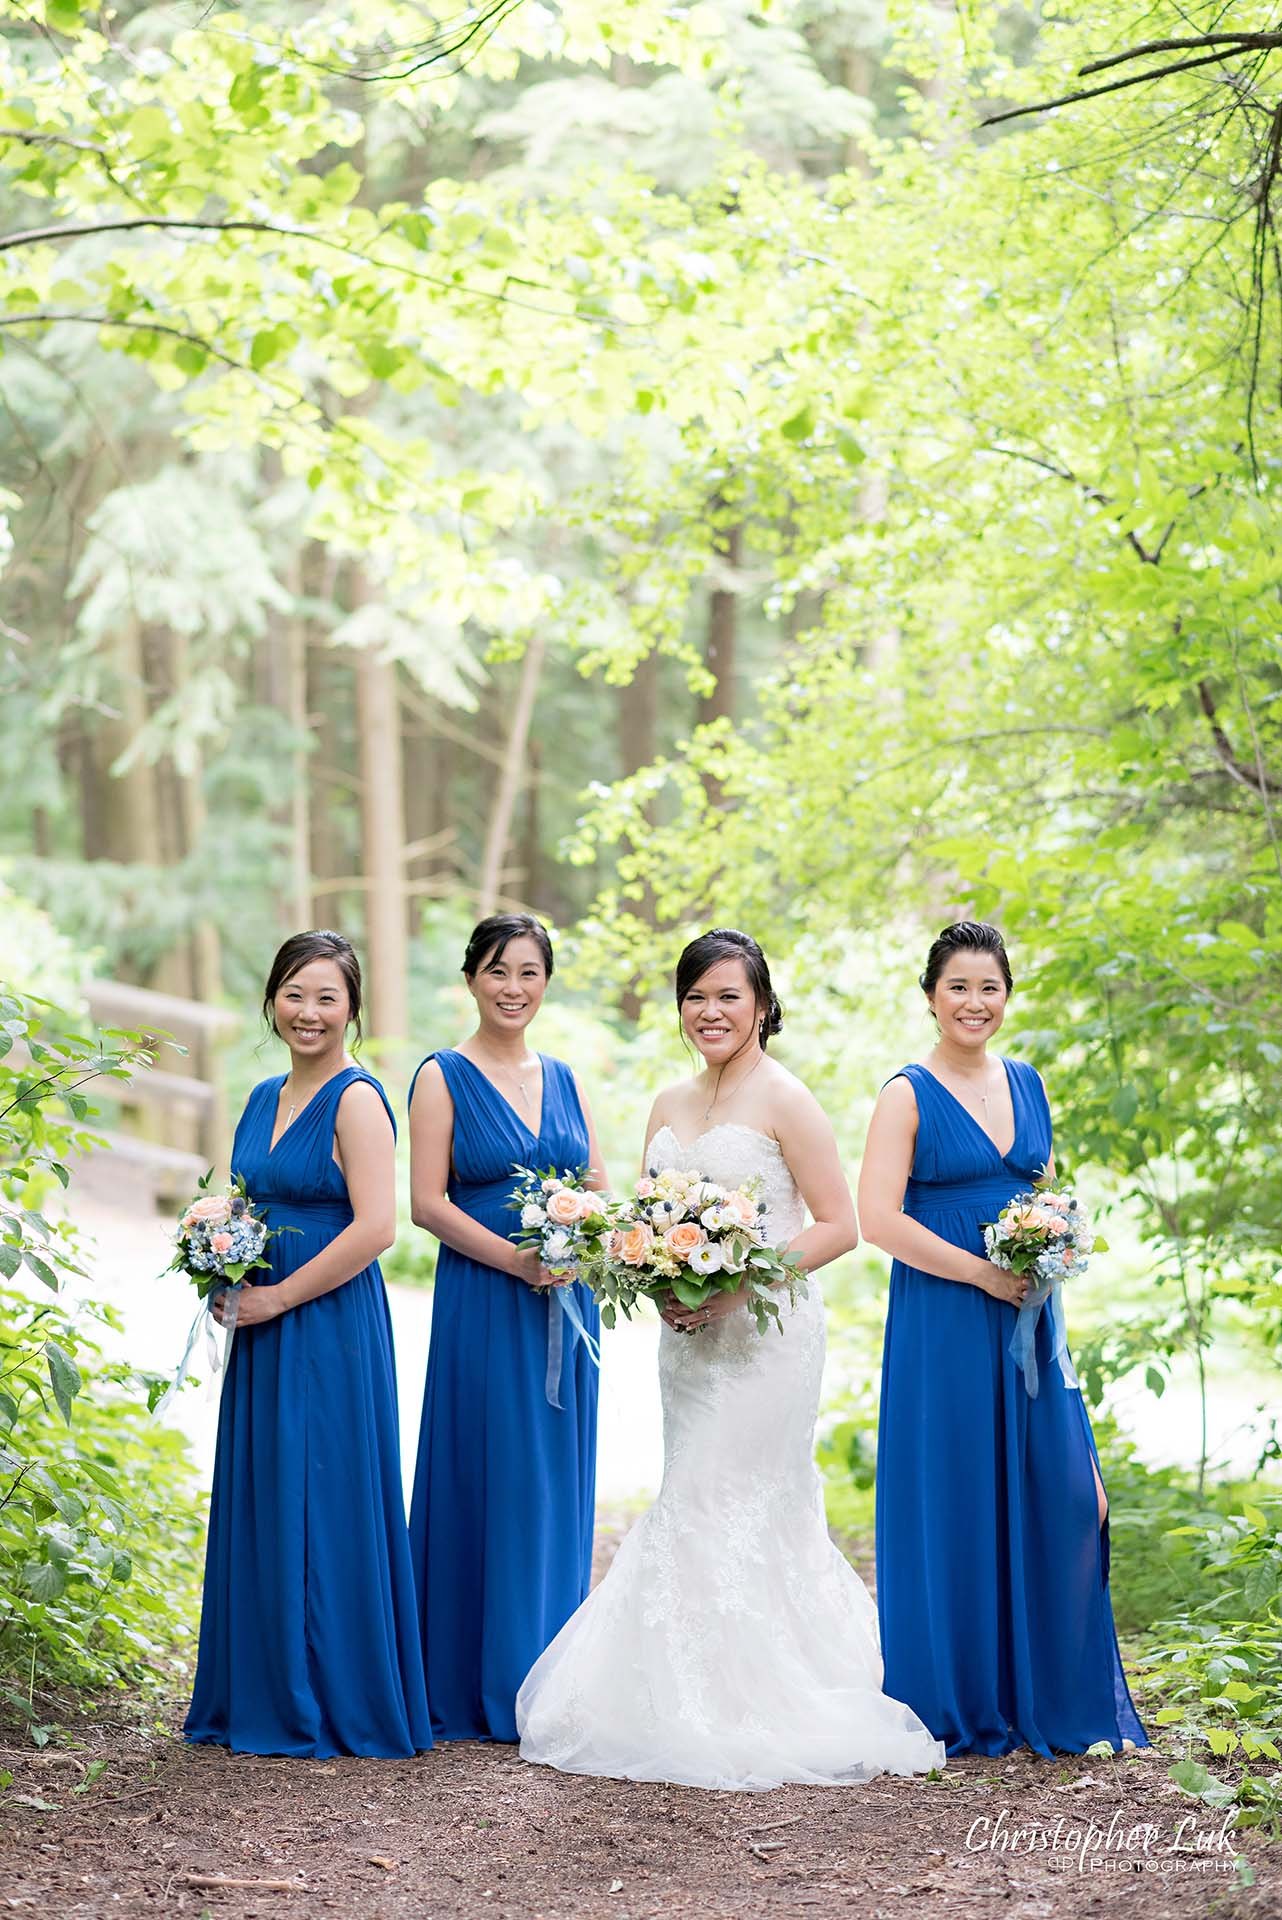 Christopher Luk Toronto Christian Community Church Kleinburg McMichael Art Gallery Presidente Banquet Hall Vaughan Wedding Photographer Bride Bridal Party Bridesmaids Matron Maid of Honour Natural Candid Photojournalistic Forest Woods Wooded Area Tall Trees Blue Dresses Smile Creative Pose